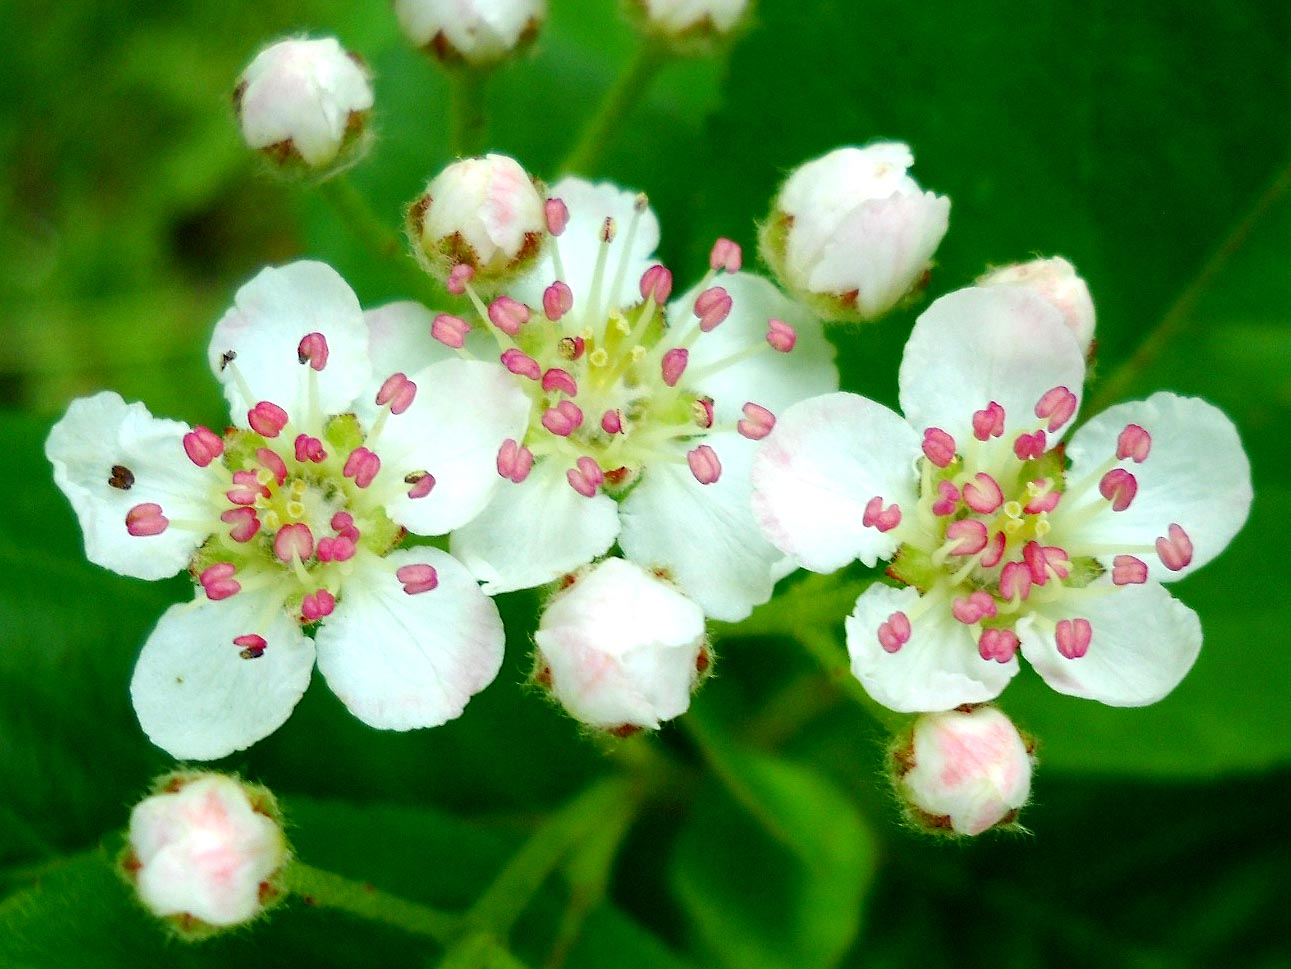 Hawthorn Blossom Flower Wallpaper: My Nature Photography: Hawthorn Flowers